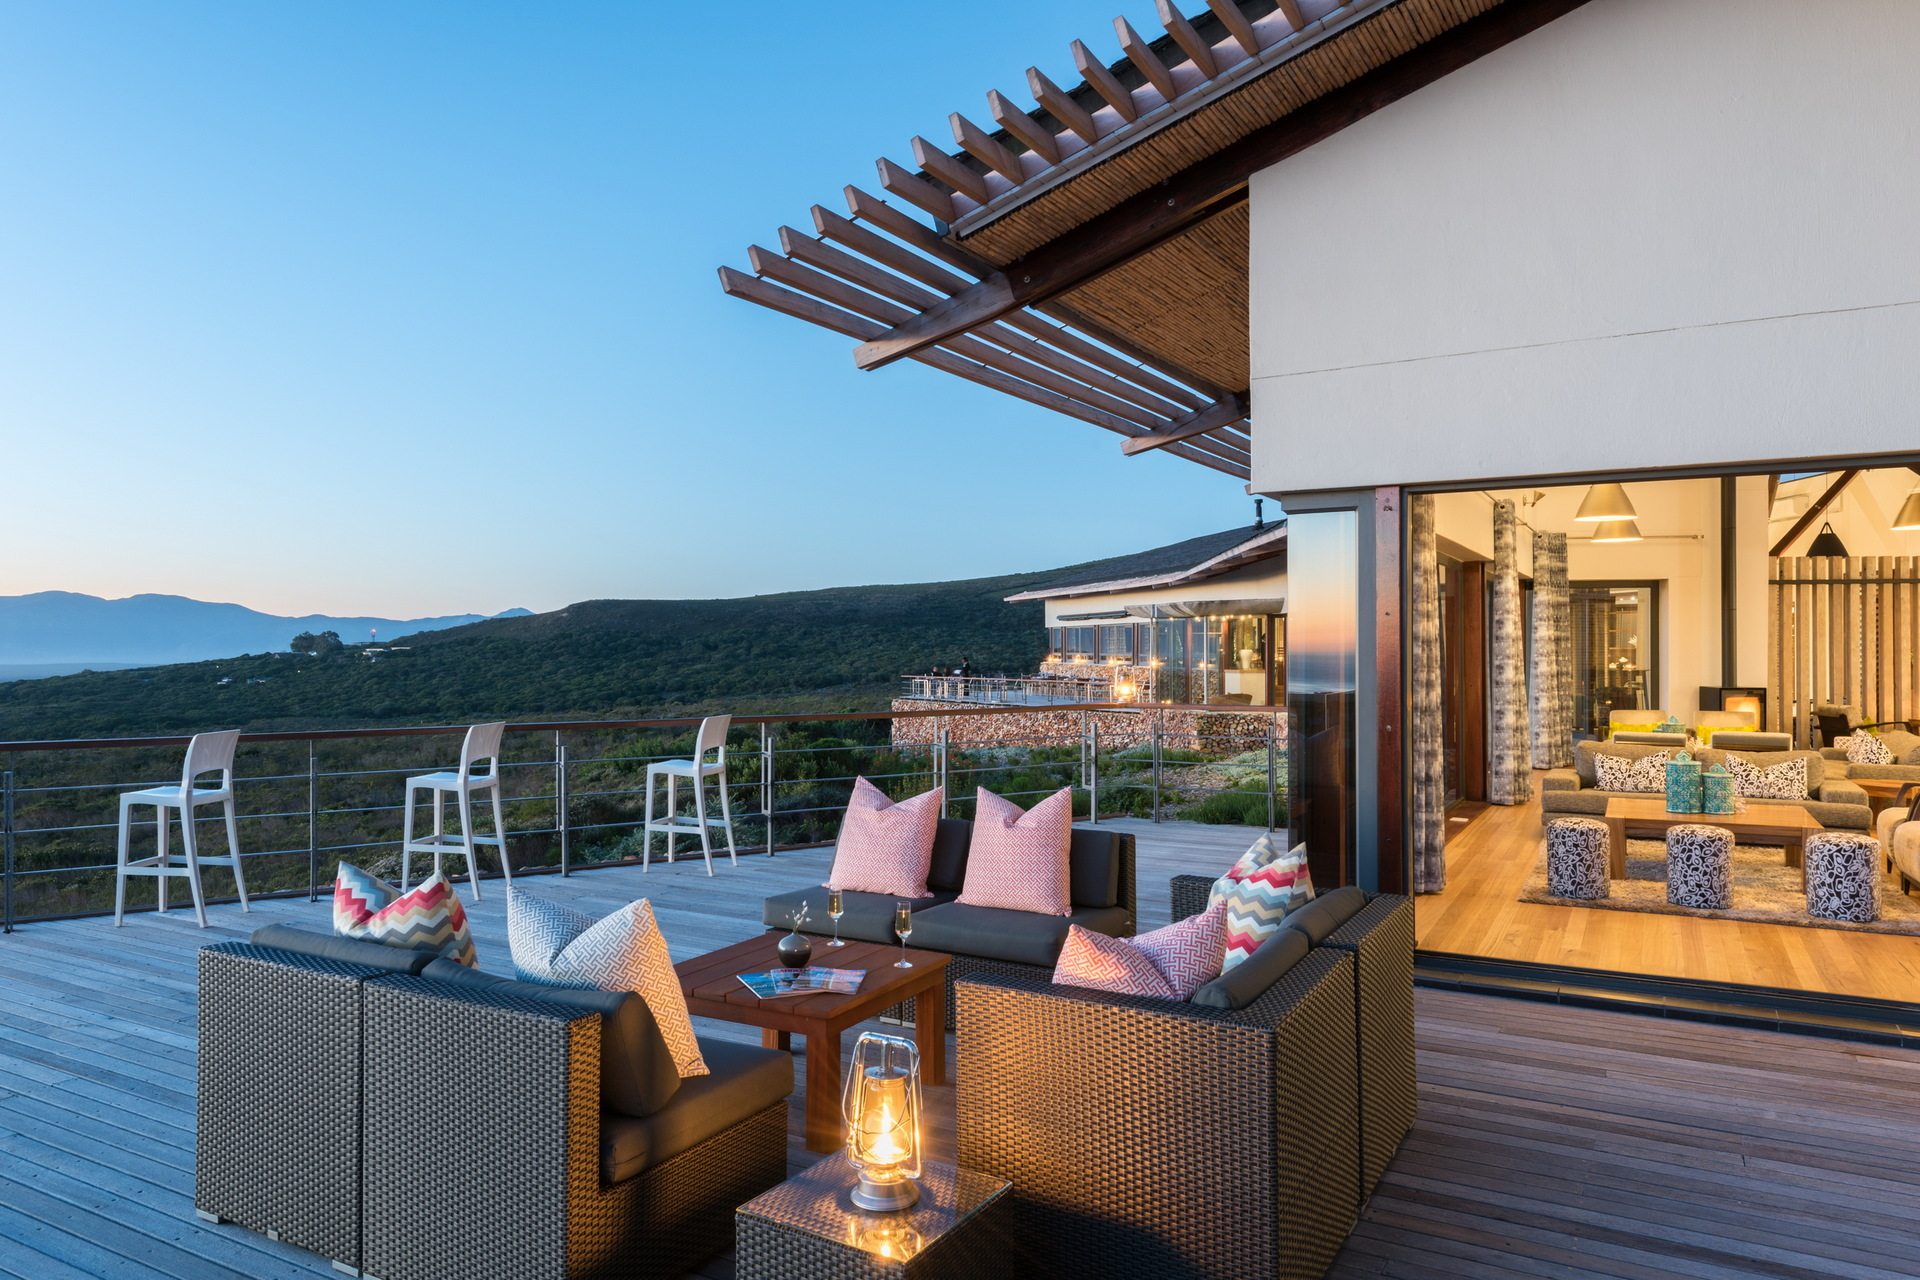 grootbos forest lodge - pool deck area #1.jpg